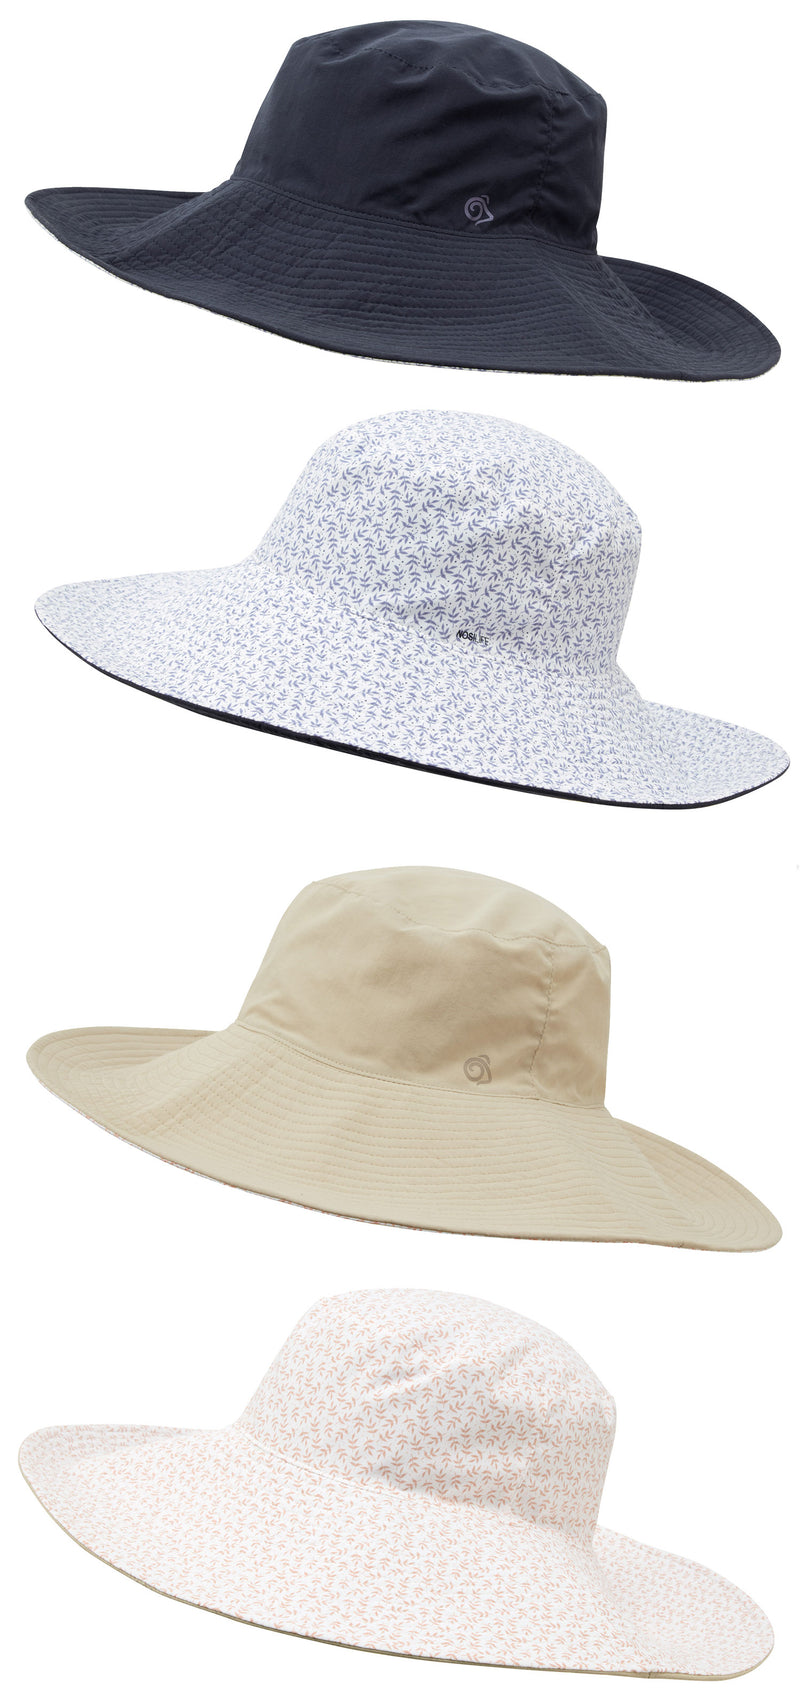 Craghoppers NosiLife Pria Ladies Sun Hat | Navy Blue, Desert Sand